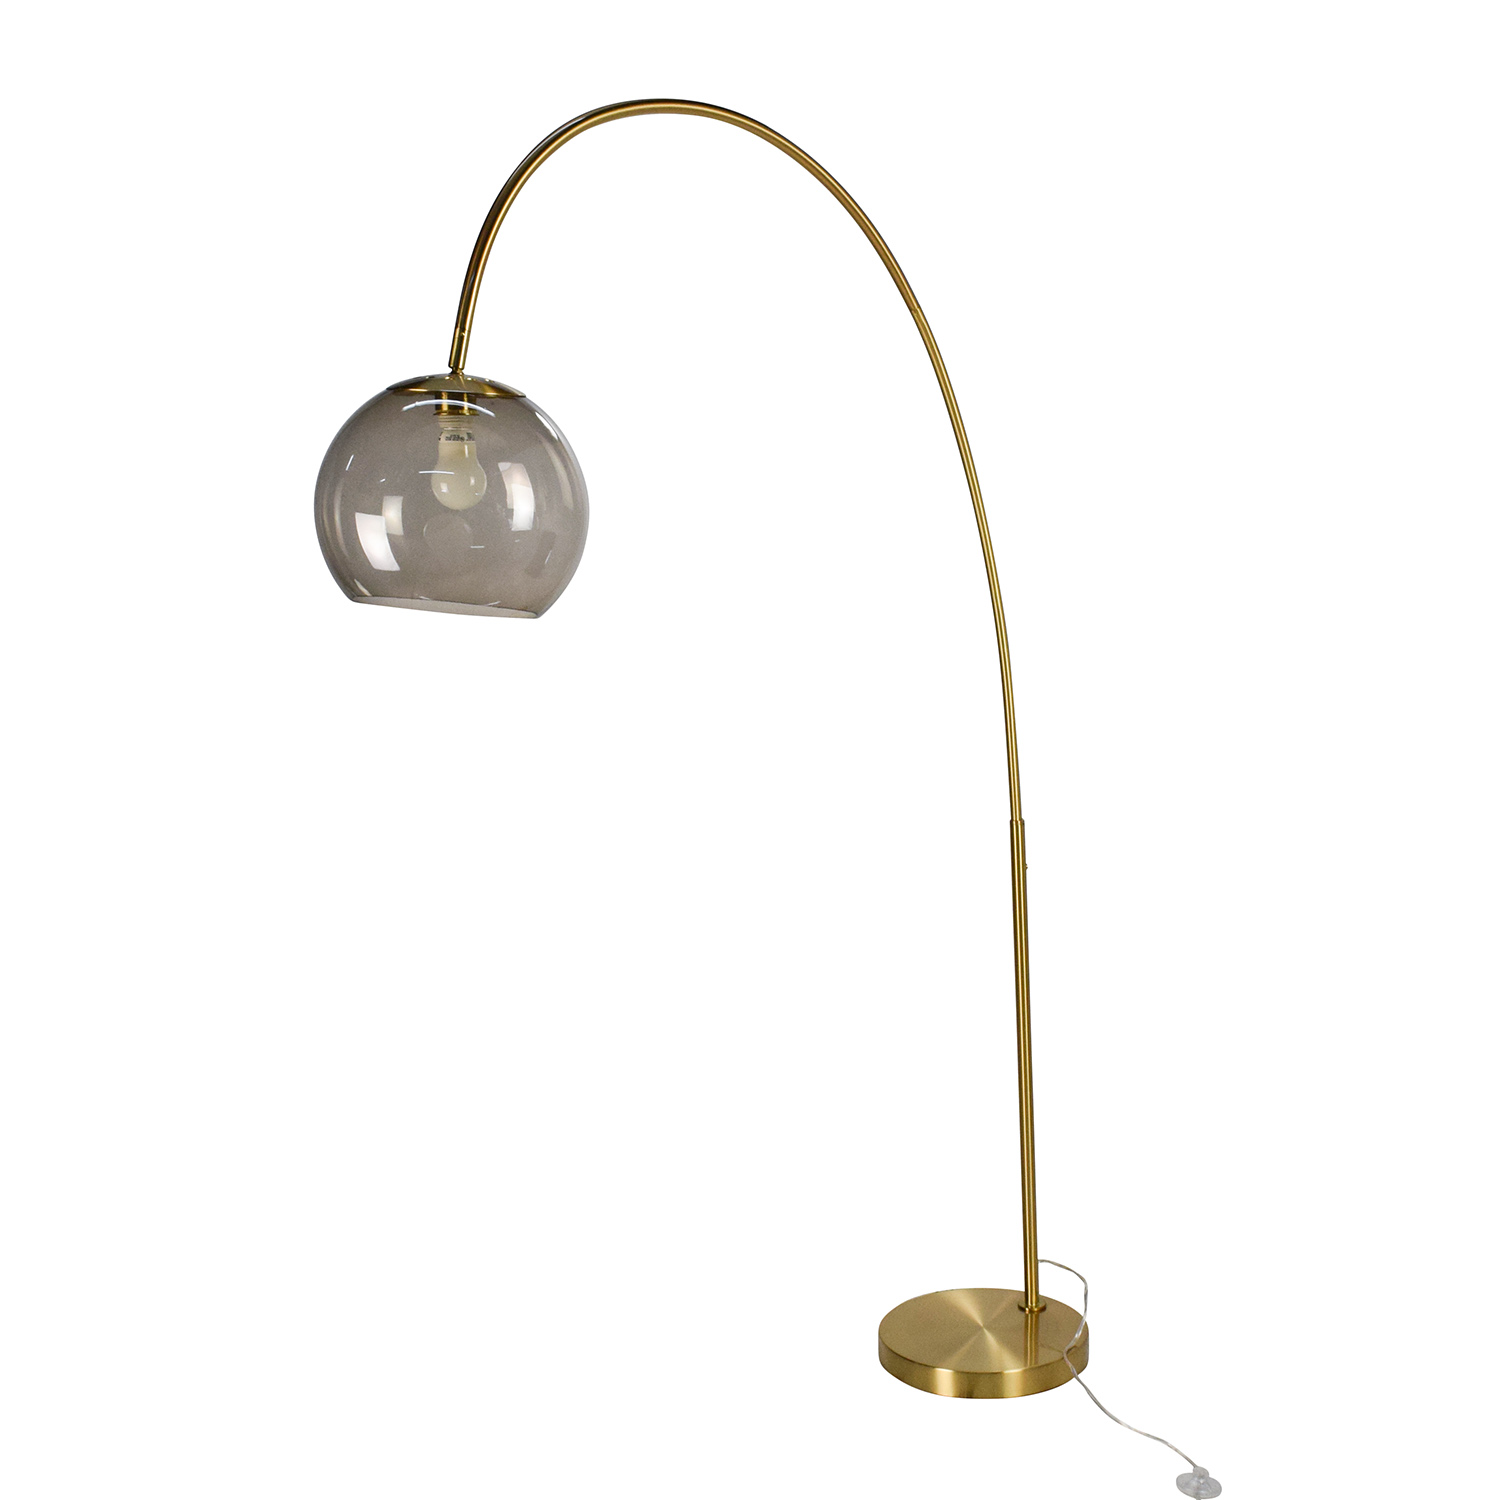 43 off arc floor lamp in gold decor buy arc floor lamp in gold lamps aloadofball Gallery